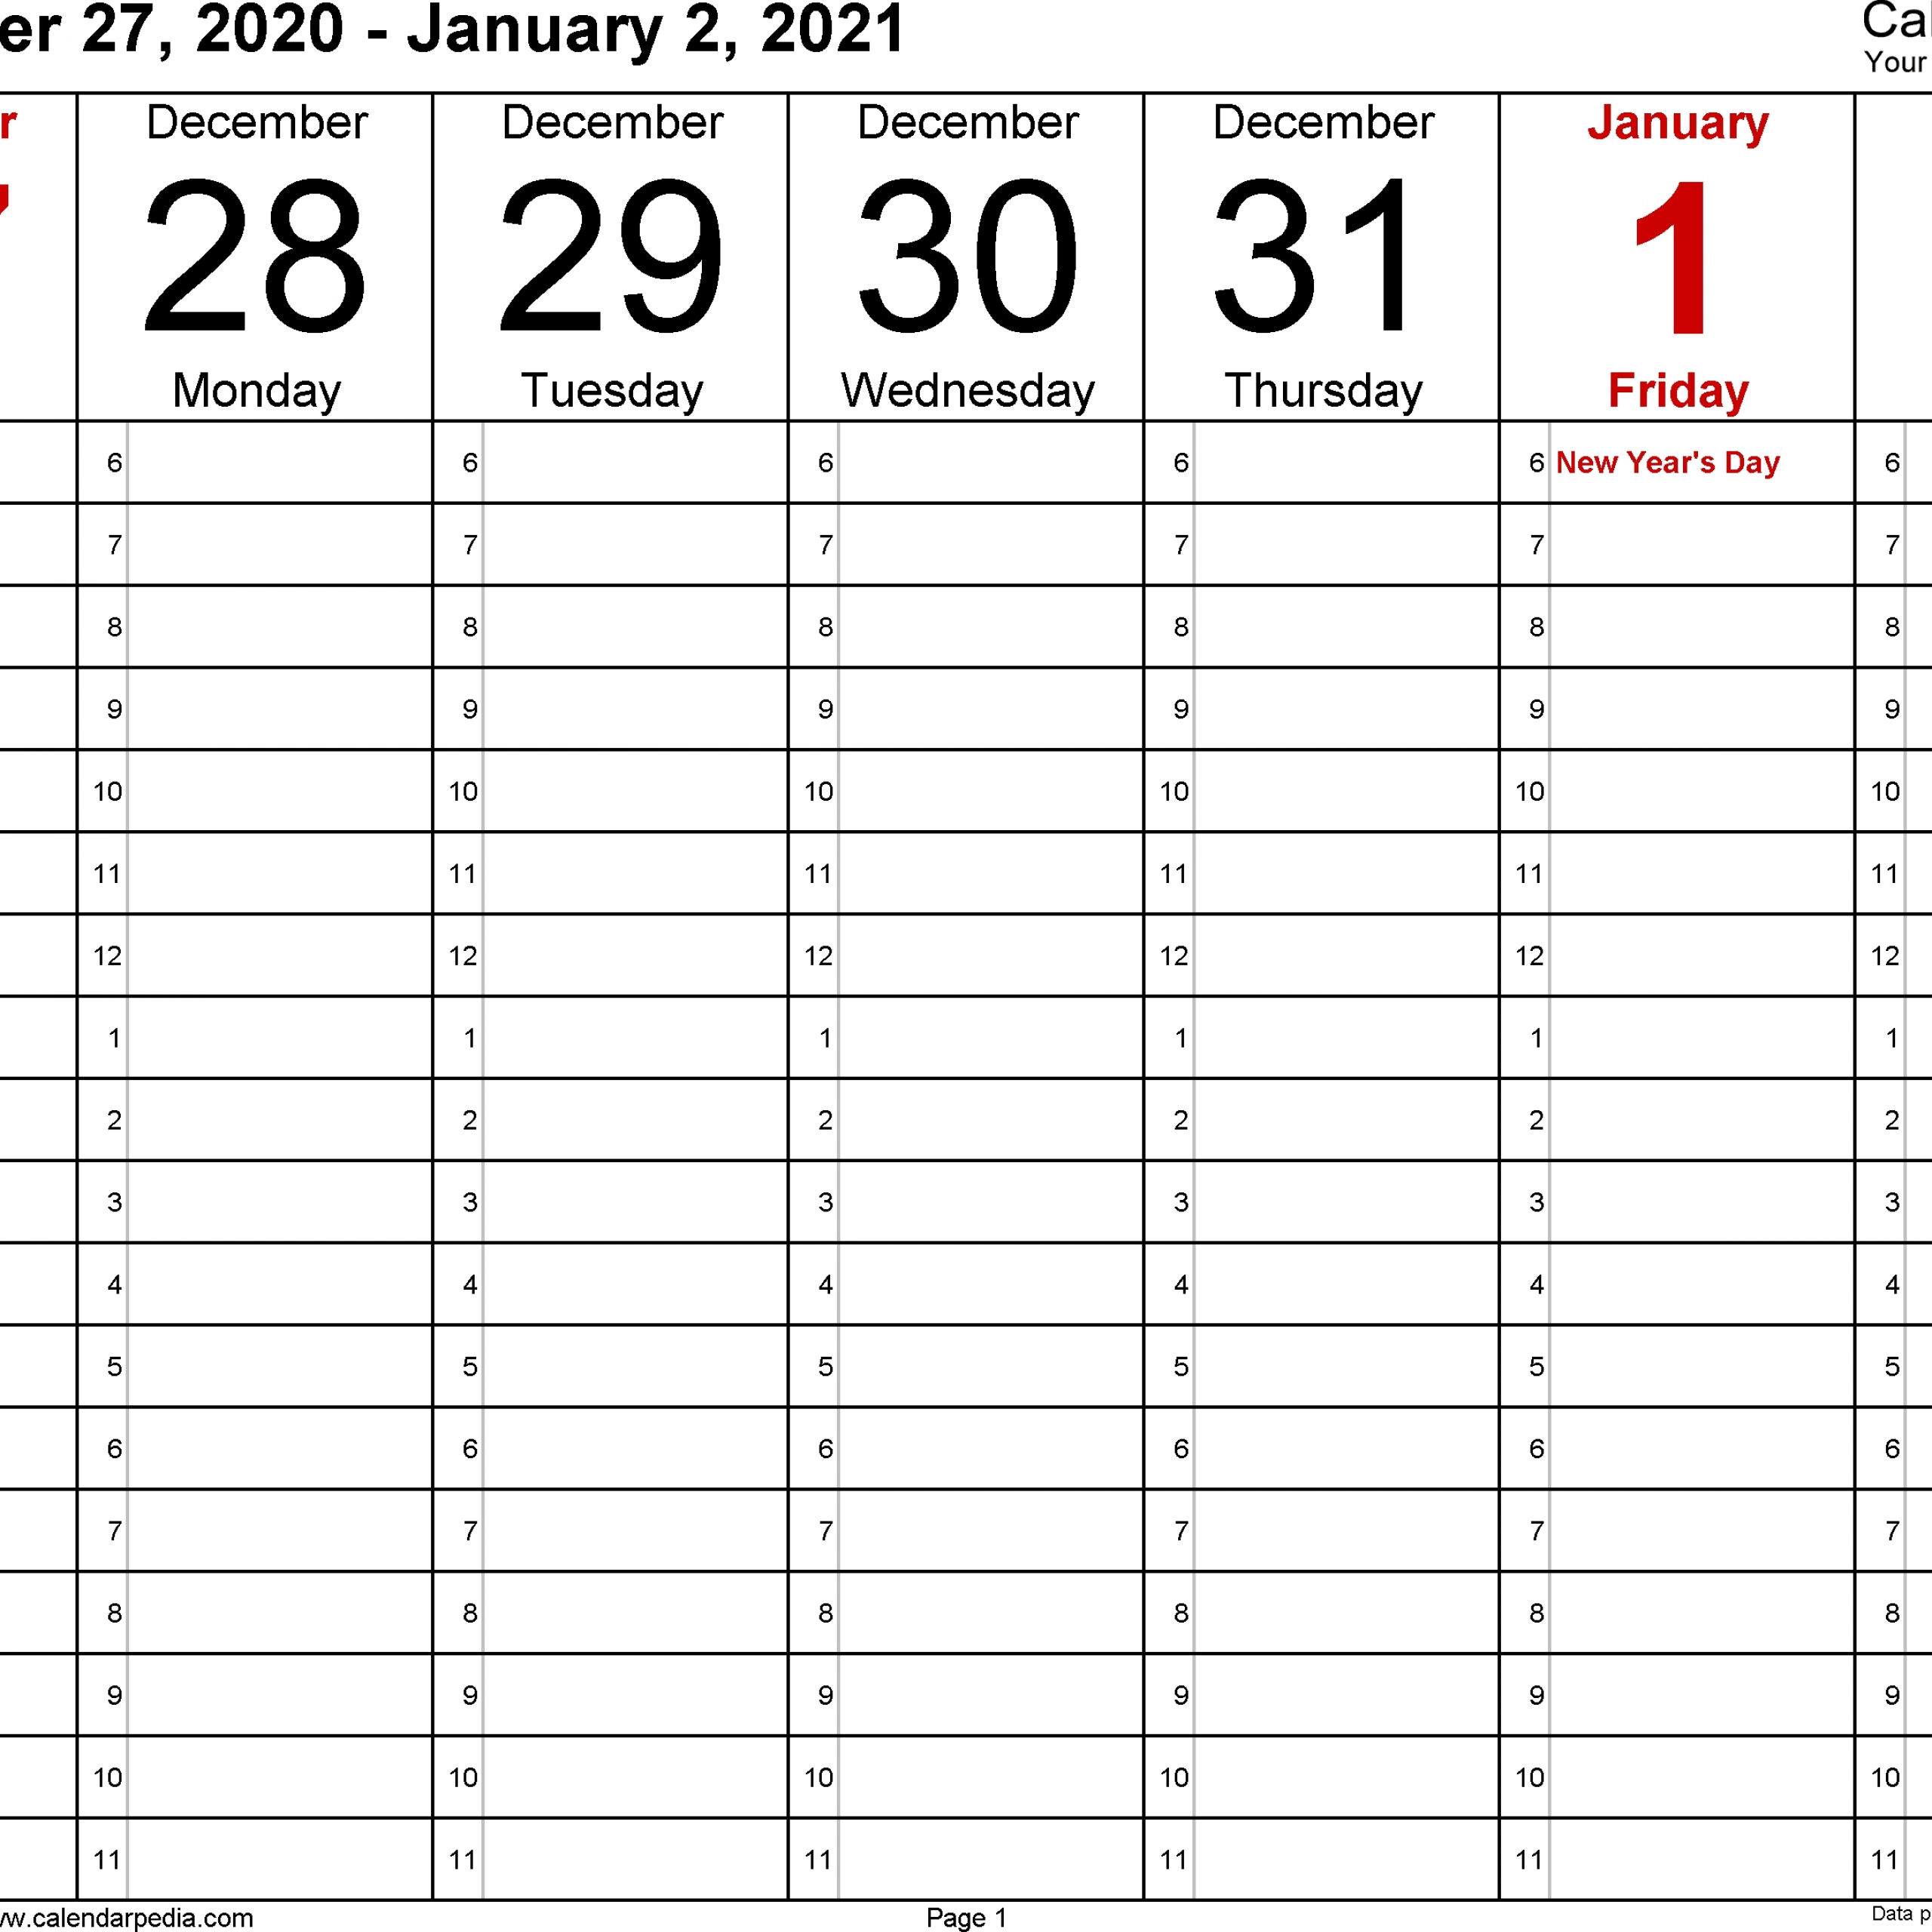 Weekly Calendars 2021 For Word – 12 Free Printable Templates